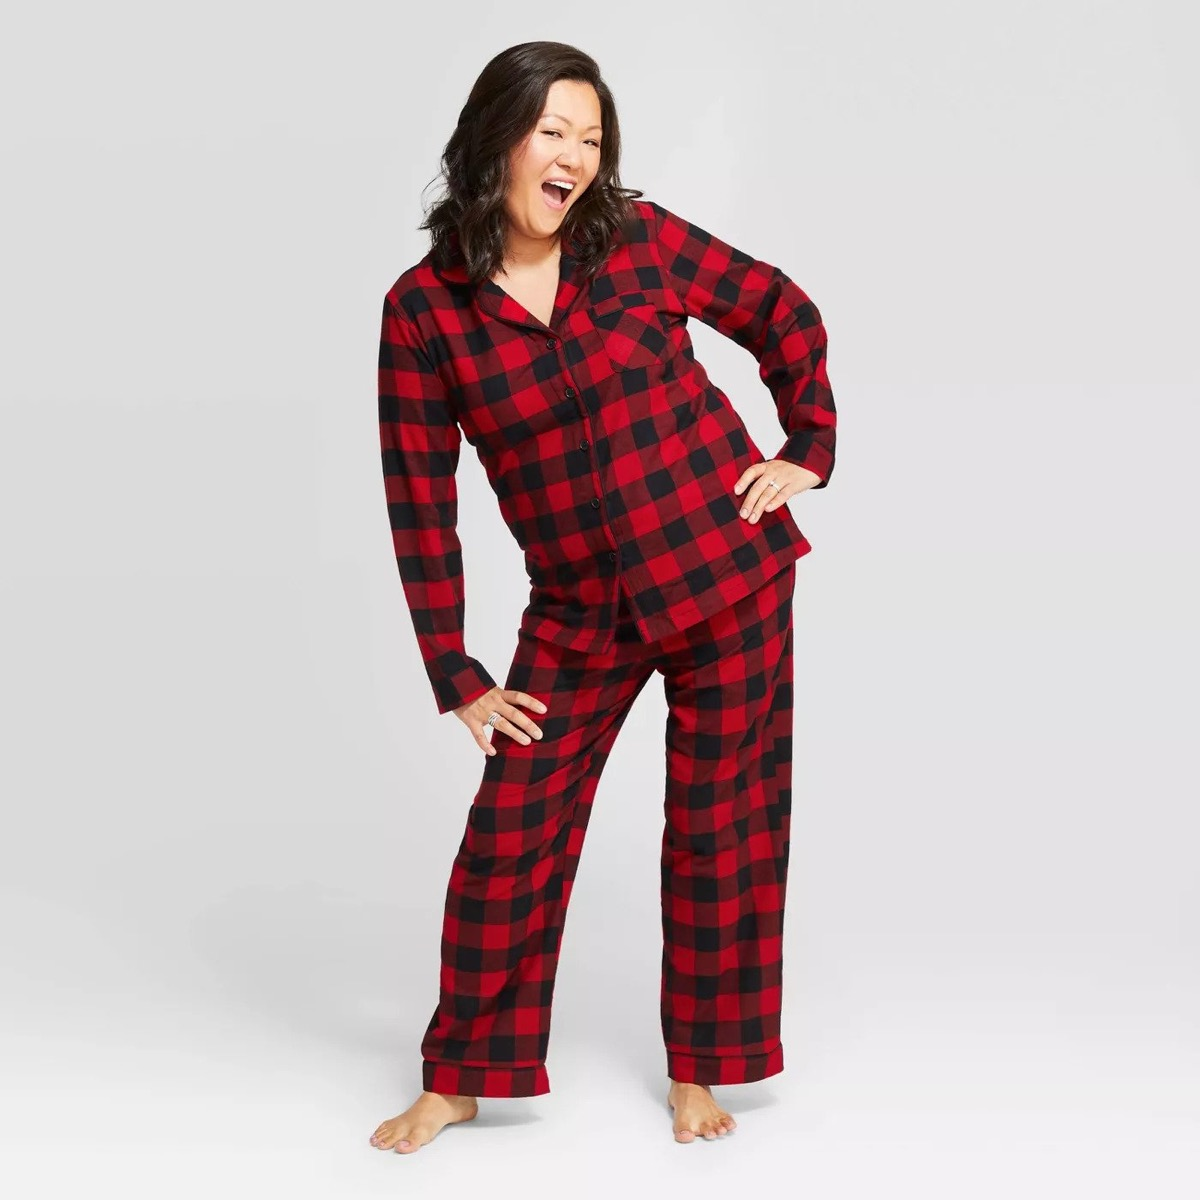 30-something asian woman in red and black pajamas